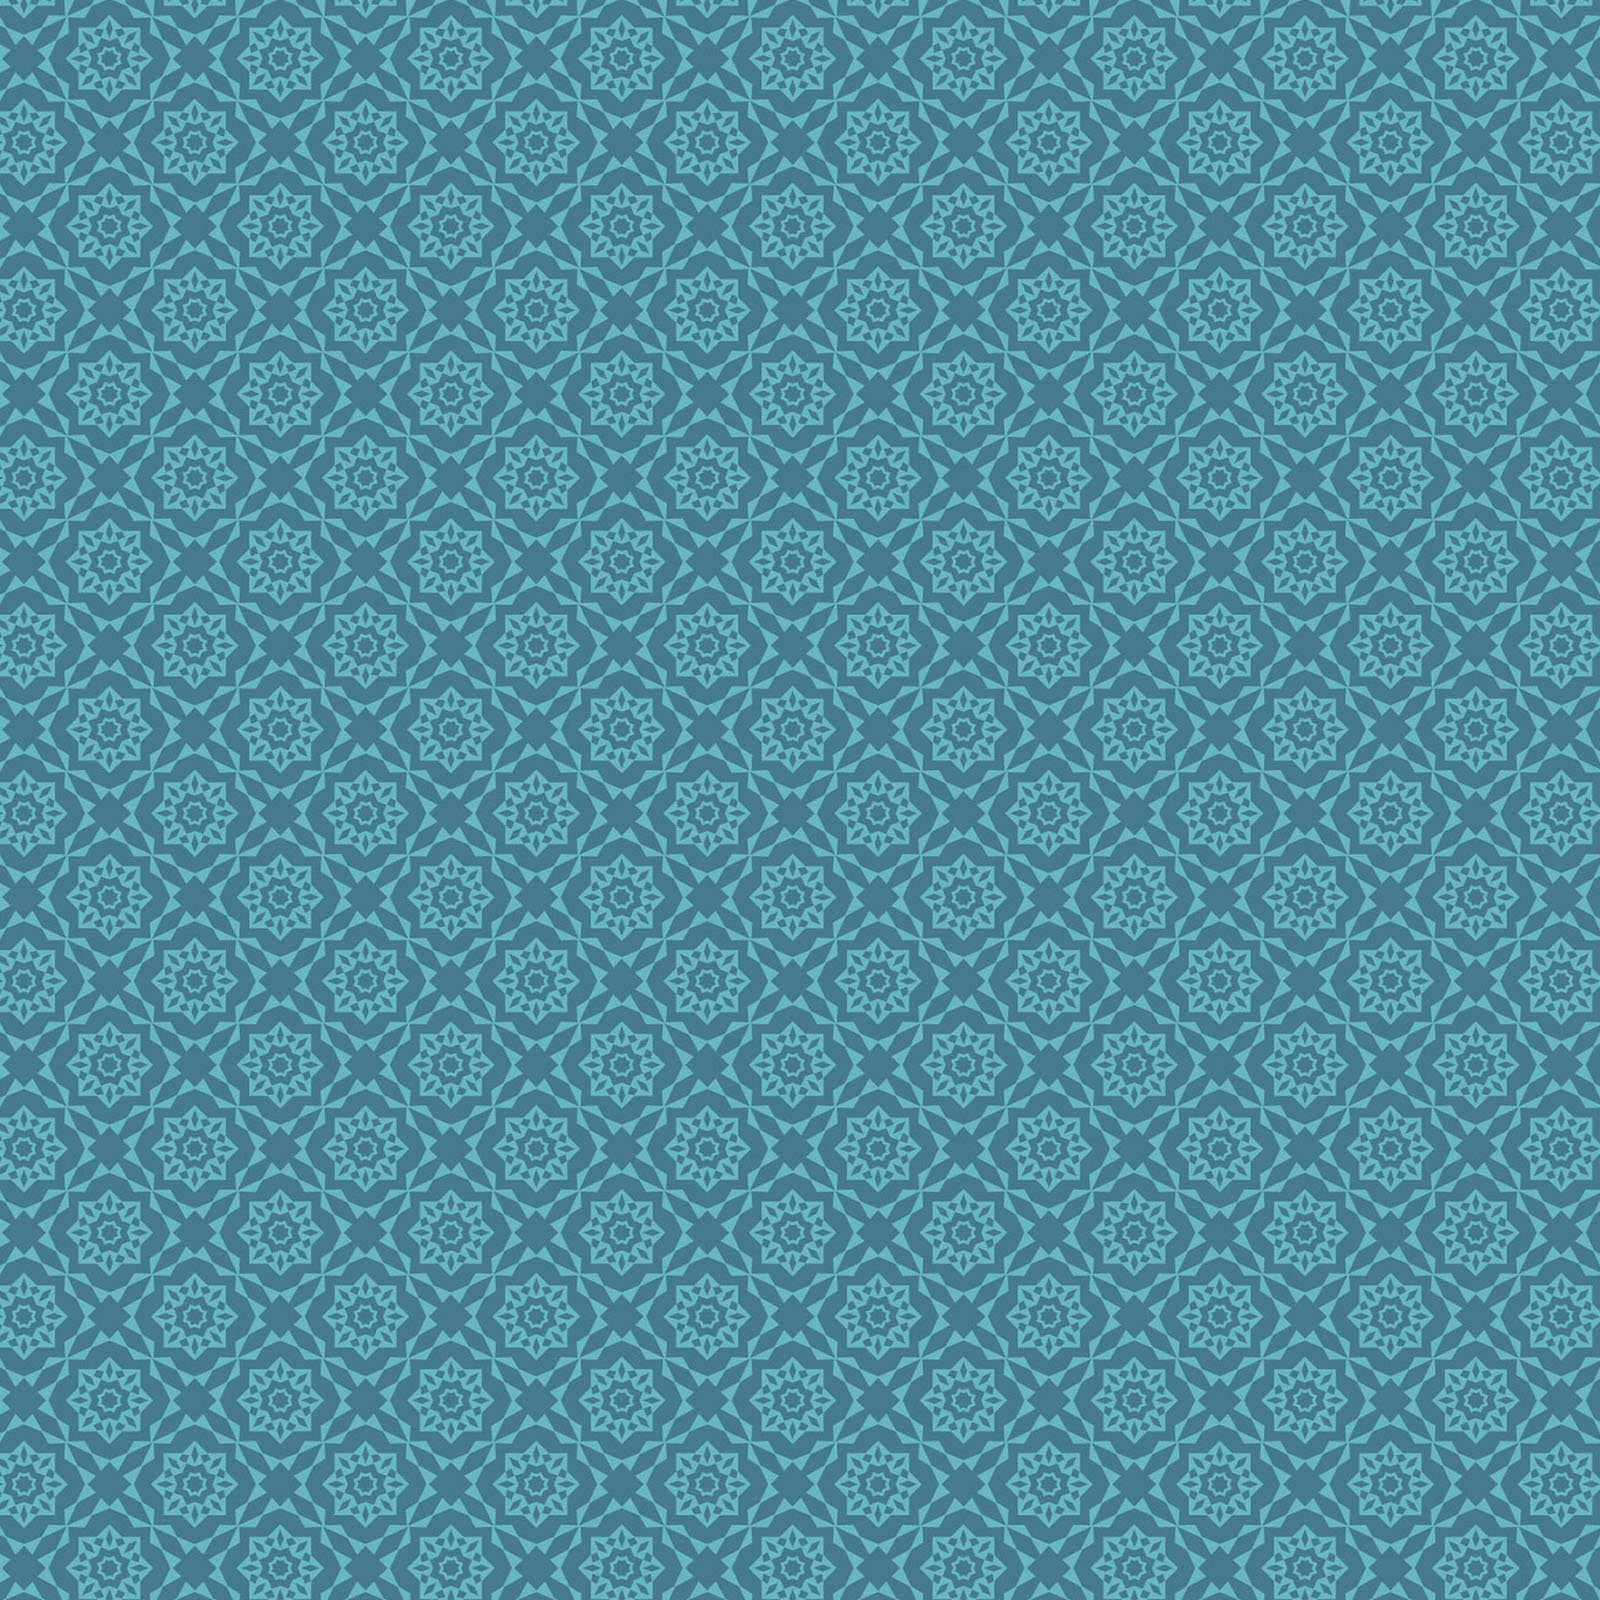 WHIM-4409 T - WHIMSY BY HANG TIGHT STUDIO MATTONELLE TEAL